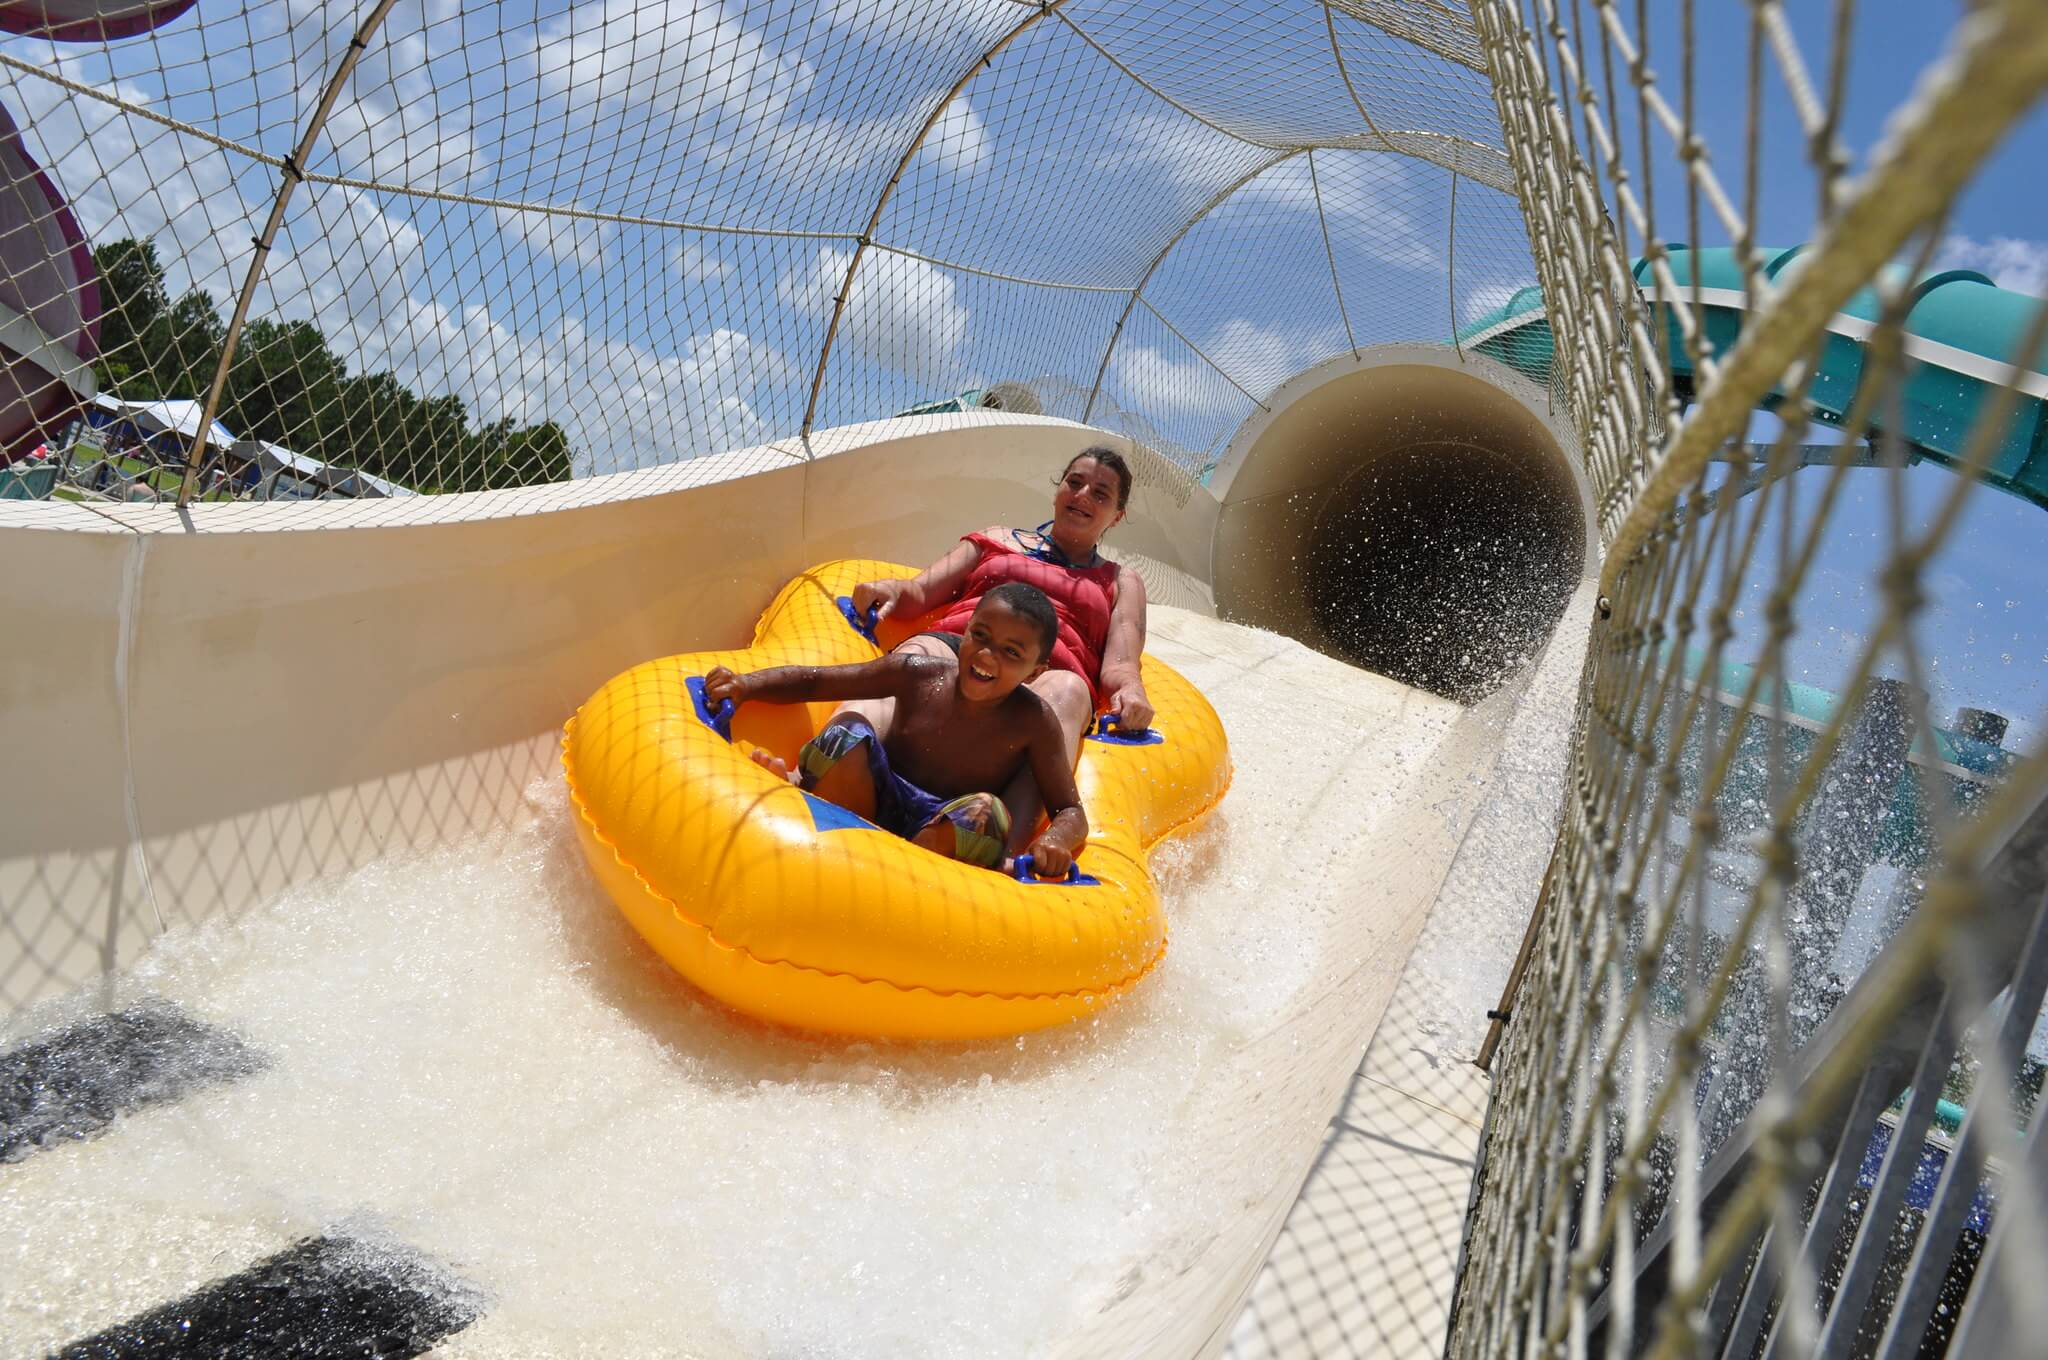 a girl and young boy on a yellow float coming out of a tunnel in a waterslide